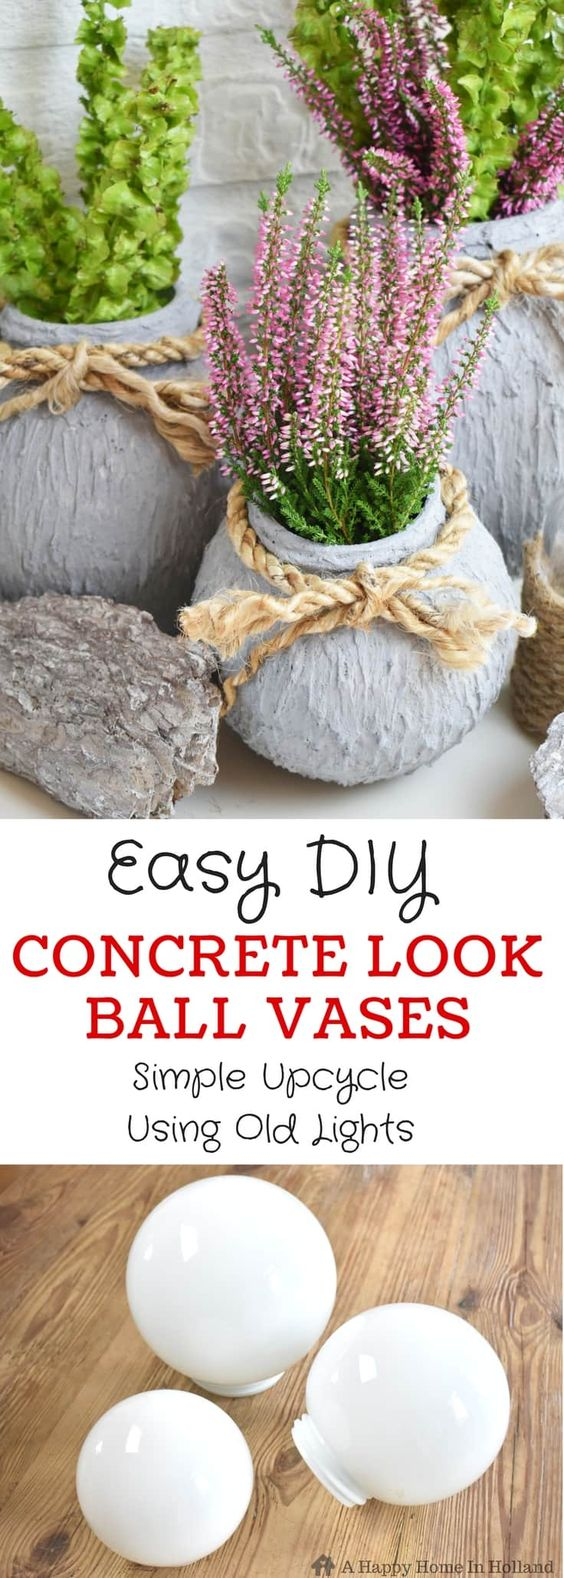 Easy DIY Concrete Look Ball Vases